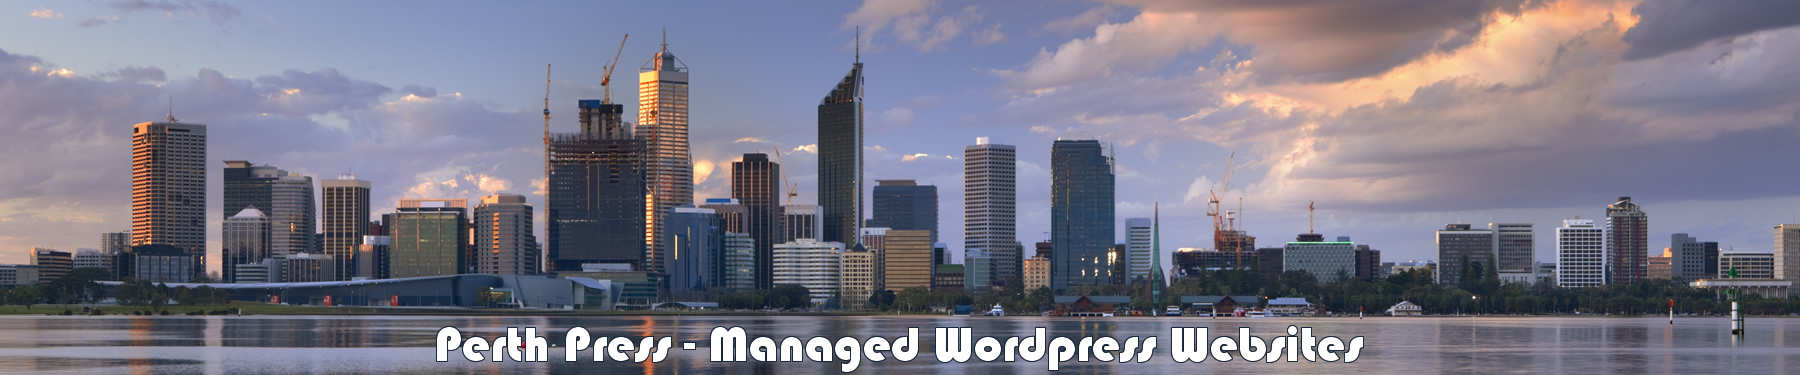 Perth Press - Managed Wordpress Websites